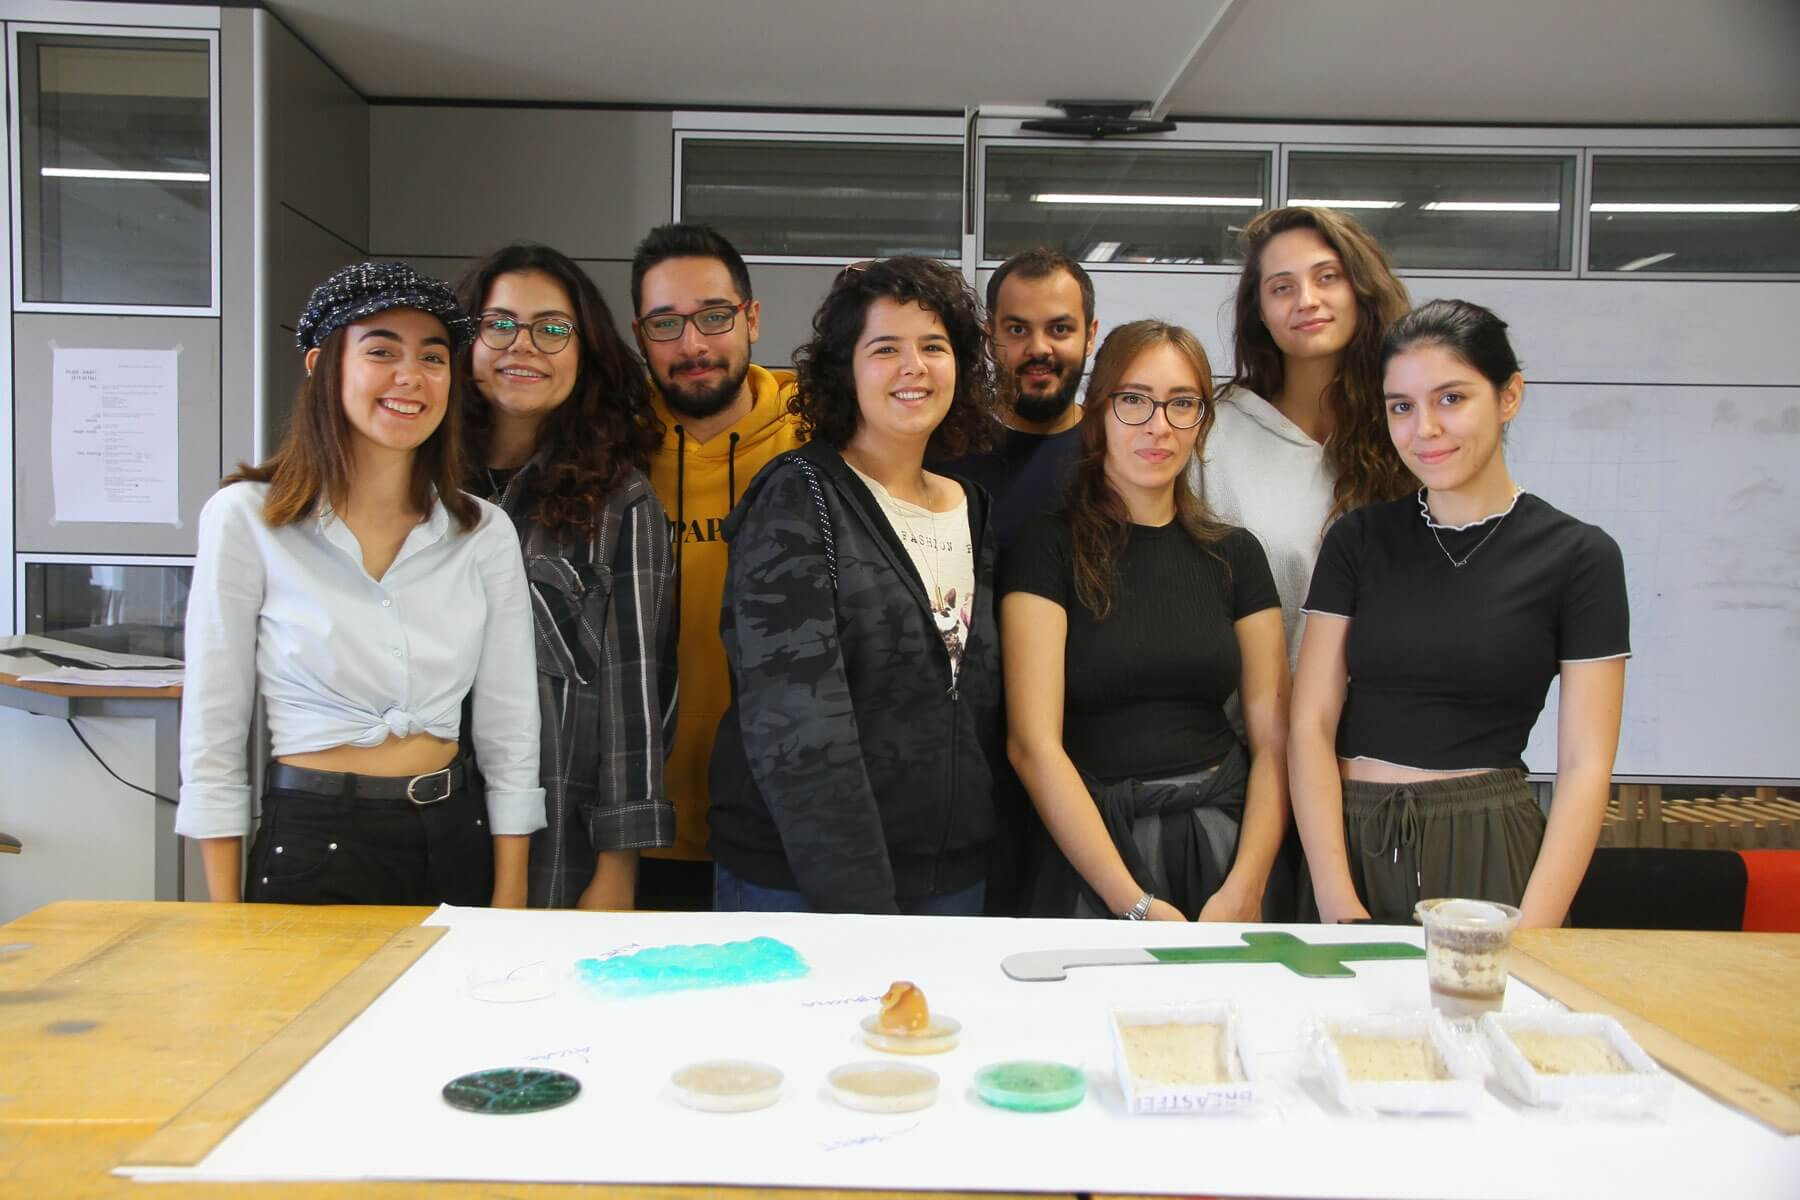 'Environmentalist' designs by IUE Students